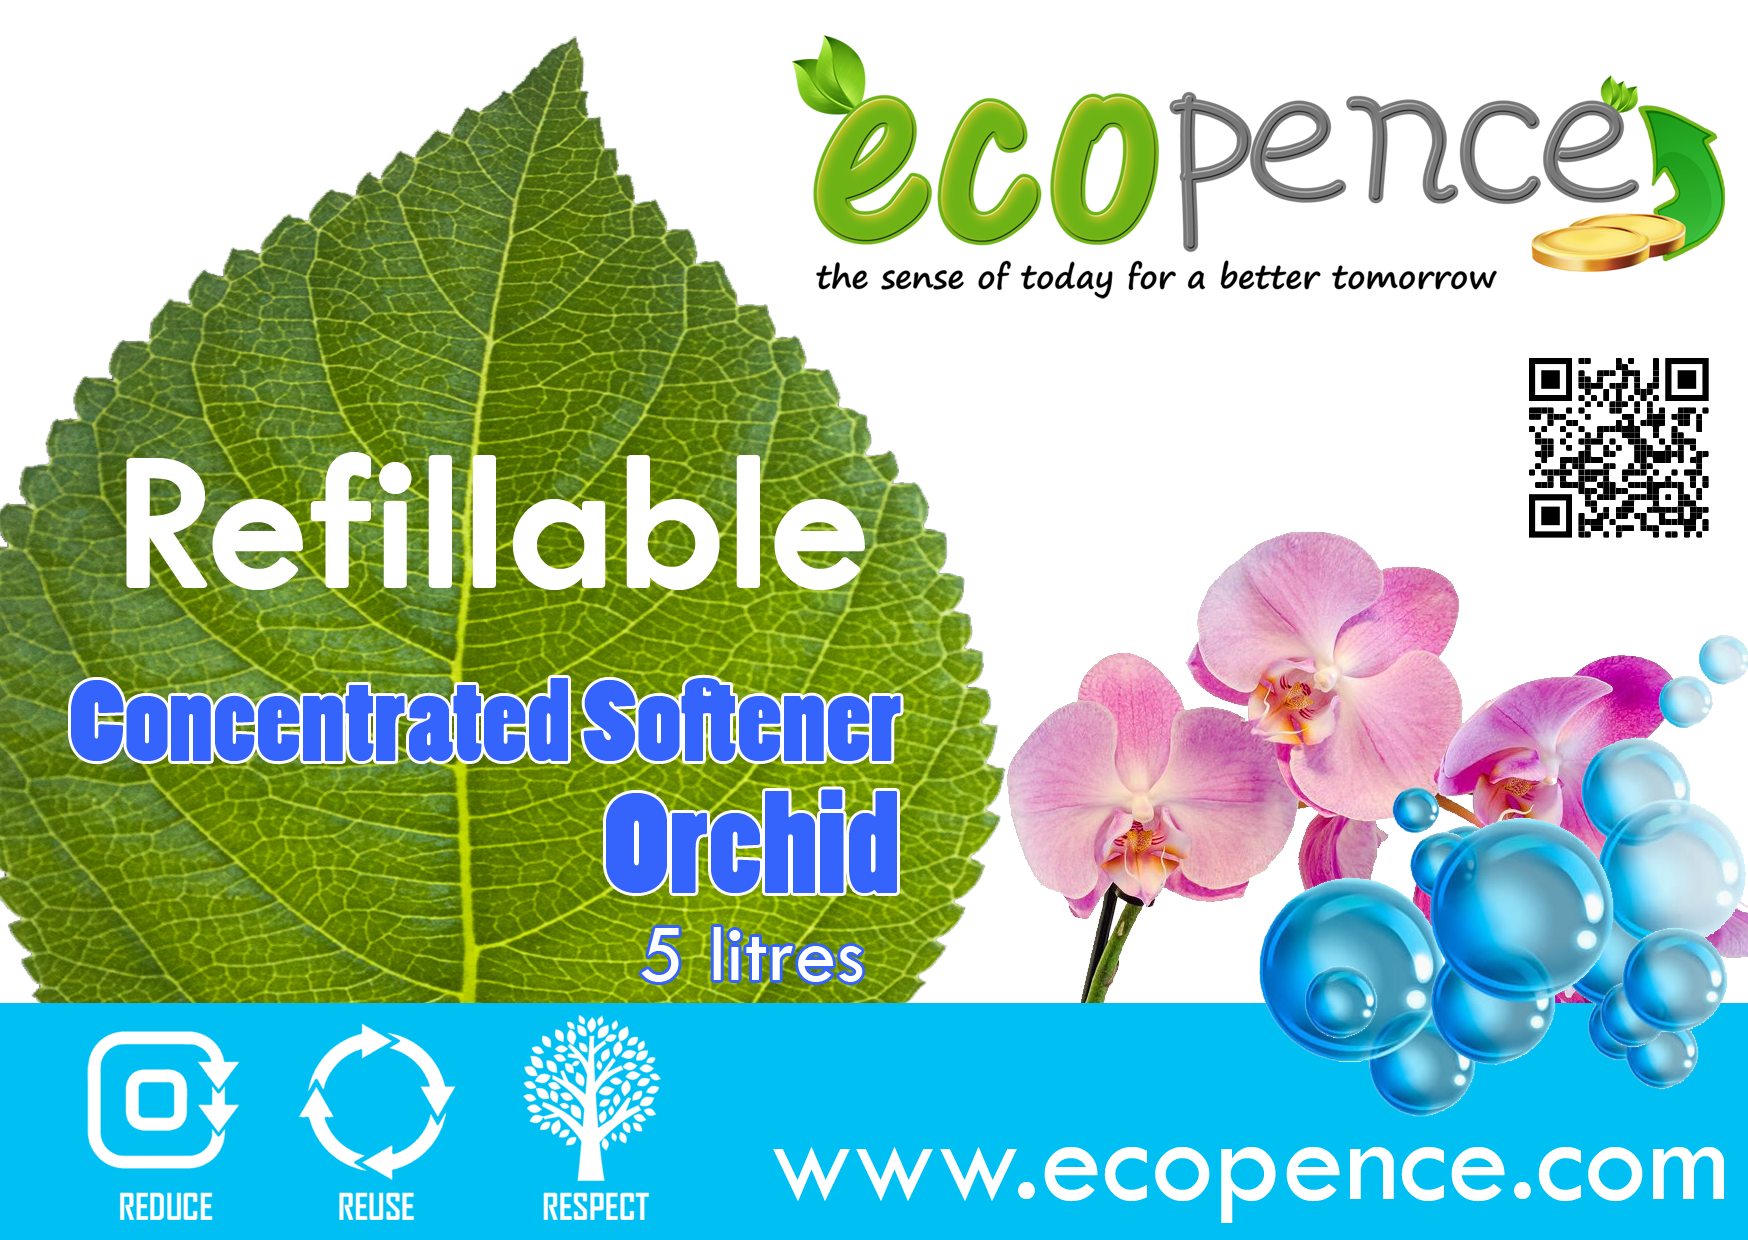 ecopence refillable softener orchid